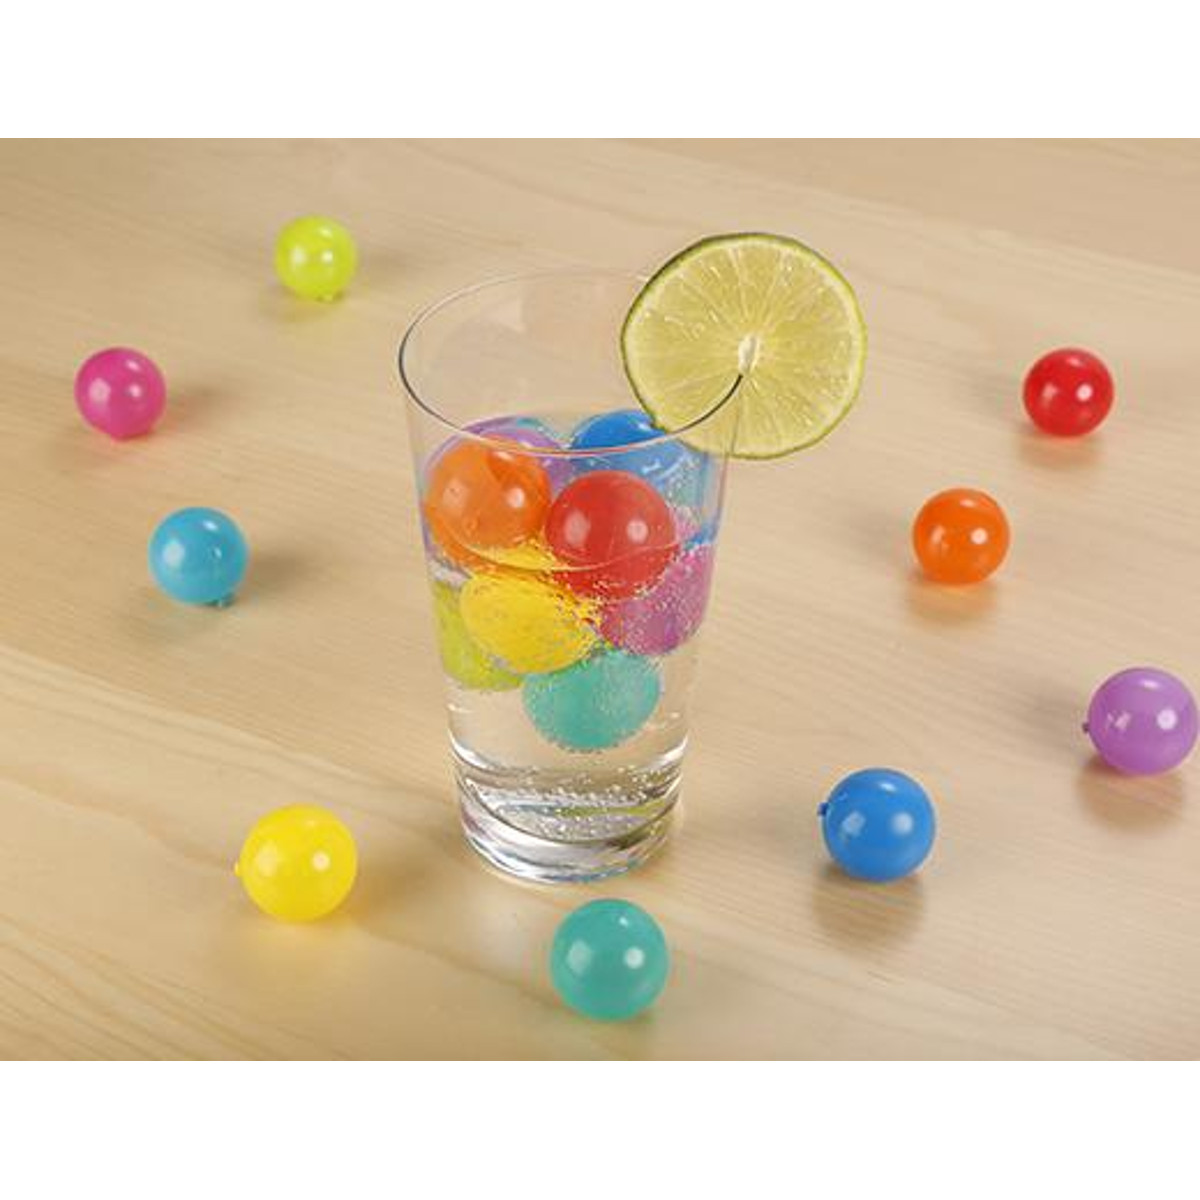 Reusable-Ice-Balls-For-Drinks-First-Alternate-Image